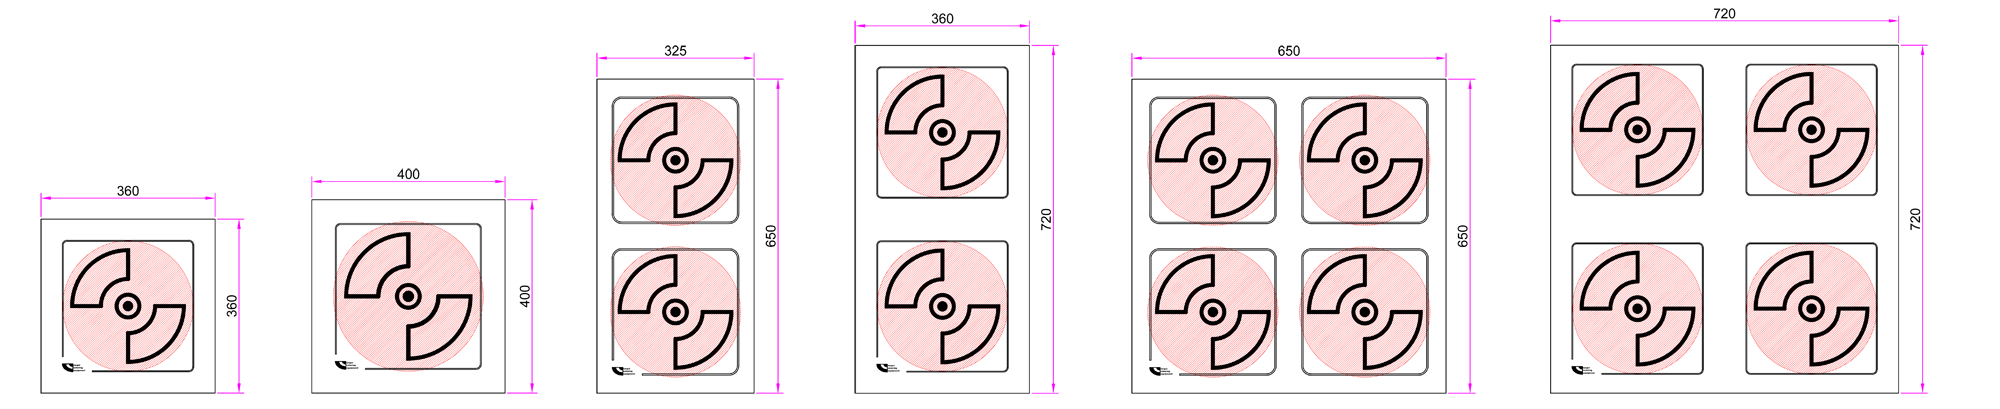 round-induction-coils-1.png